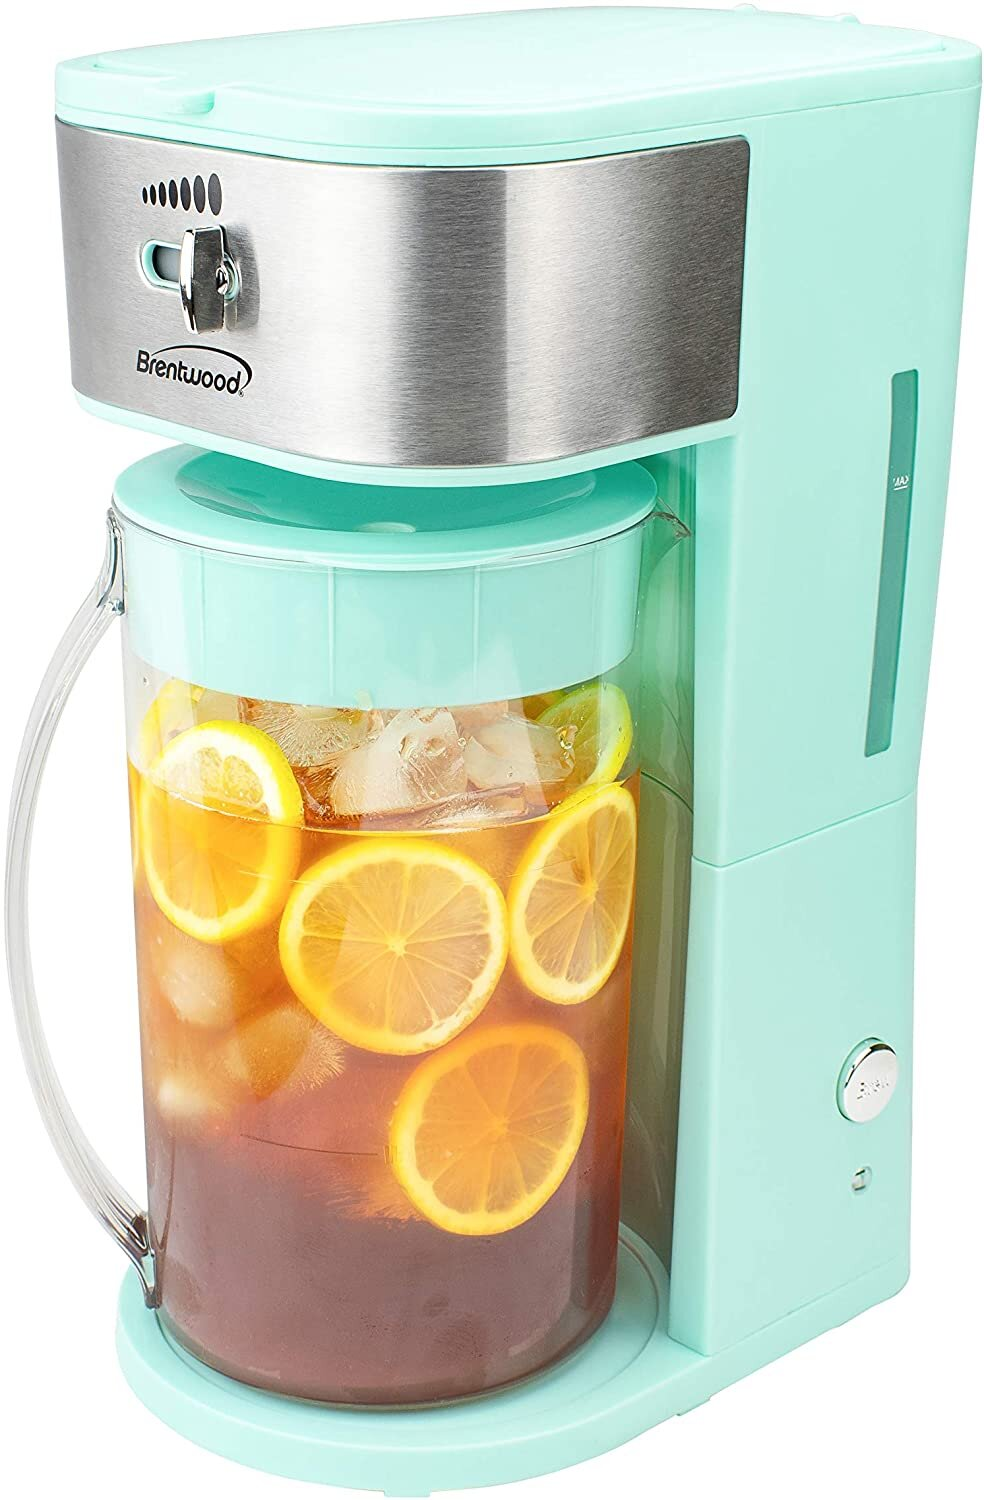 Brentwood KT-2150BL Iced Tea and Coffee Maker with 64 Ounce Pitcher.jpg